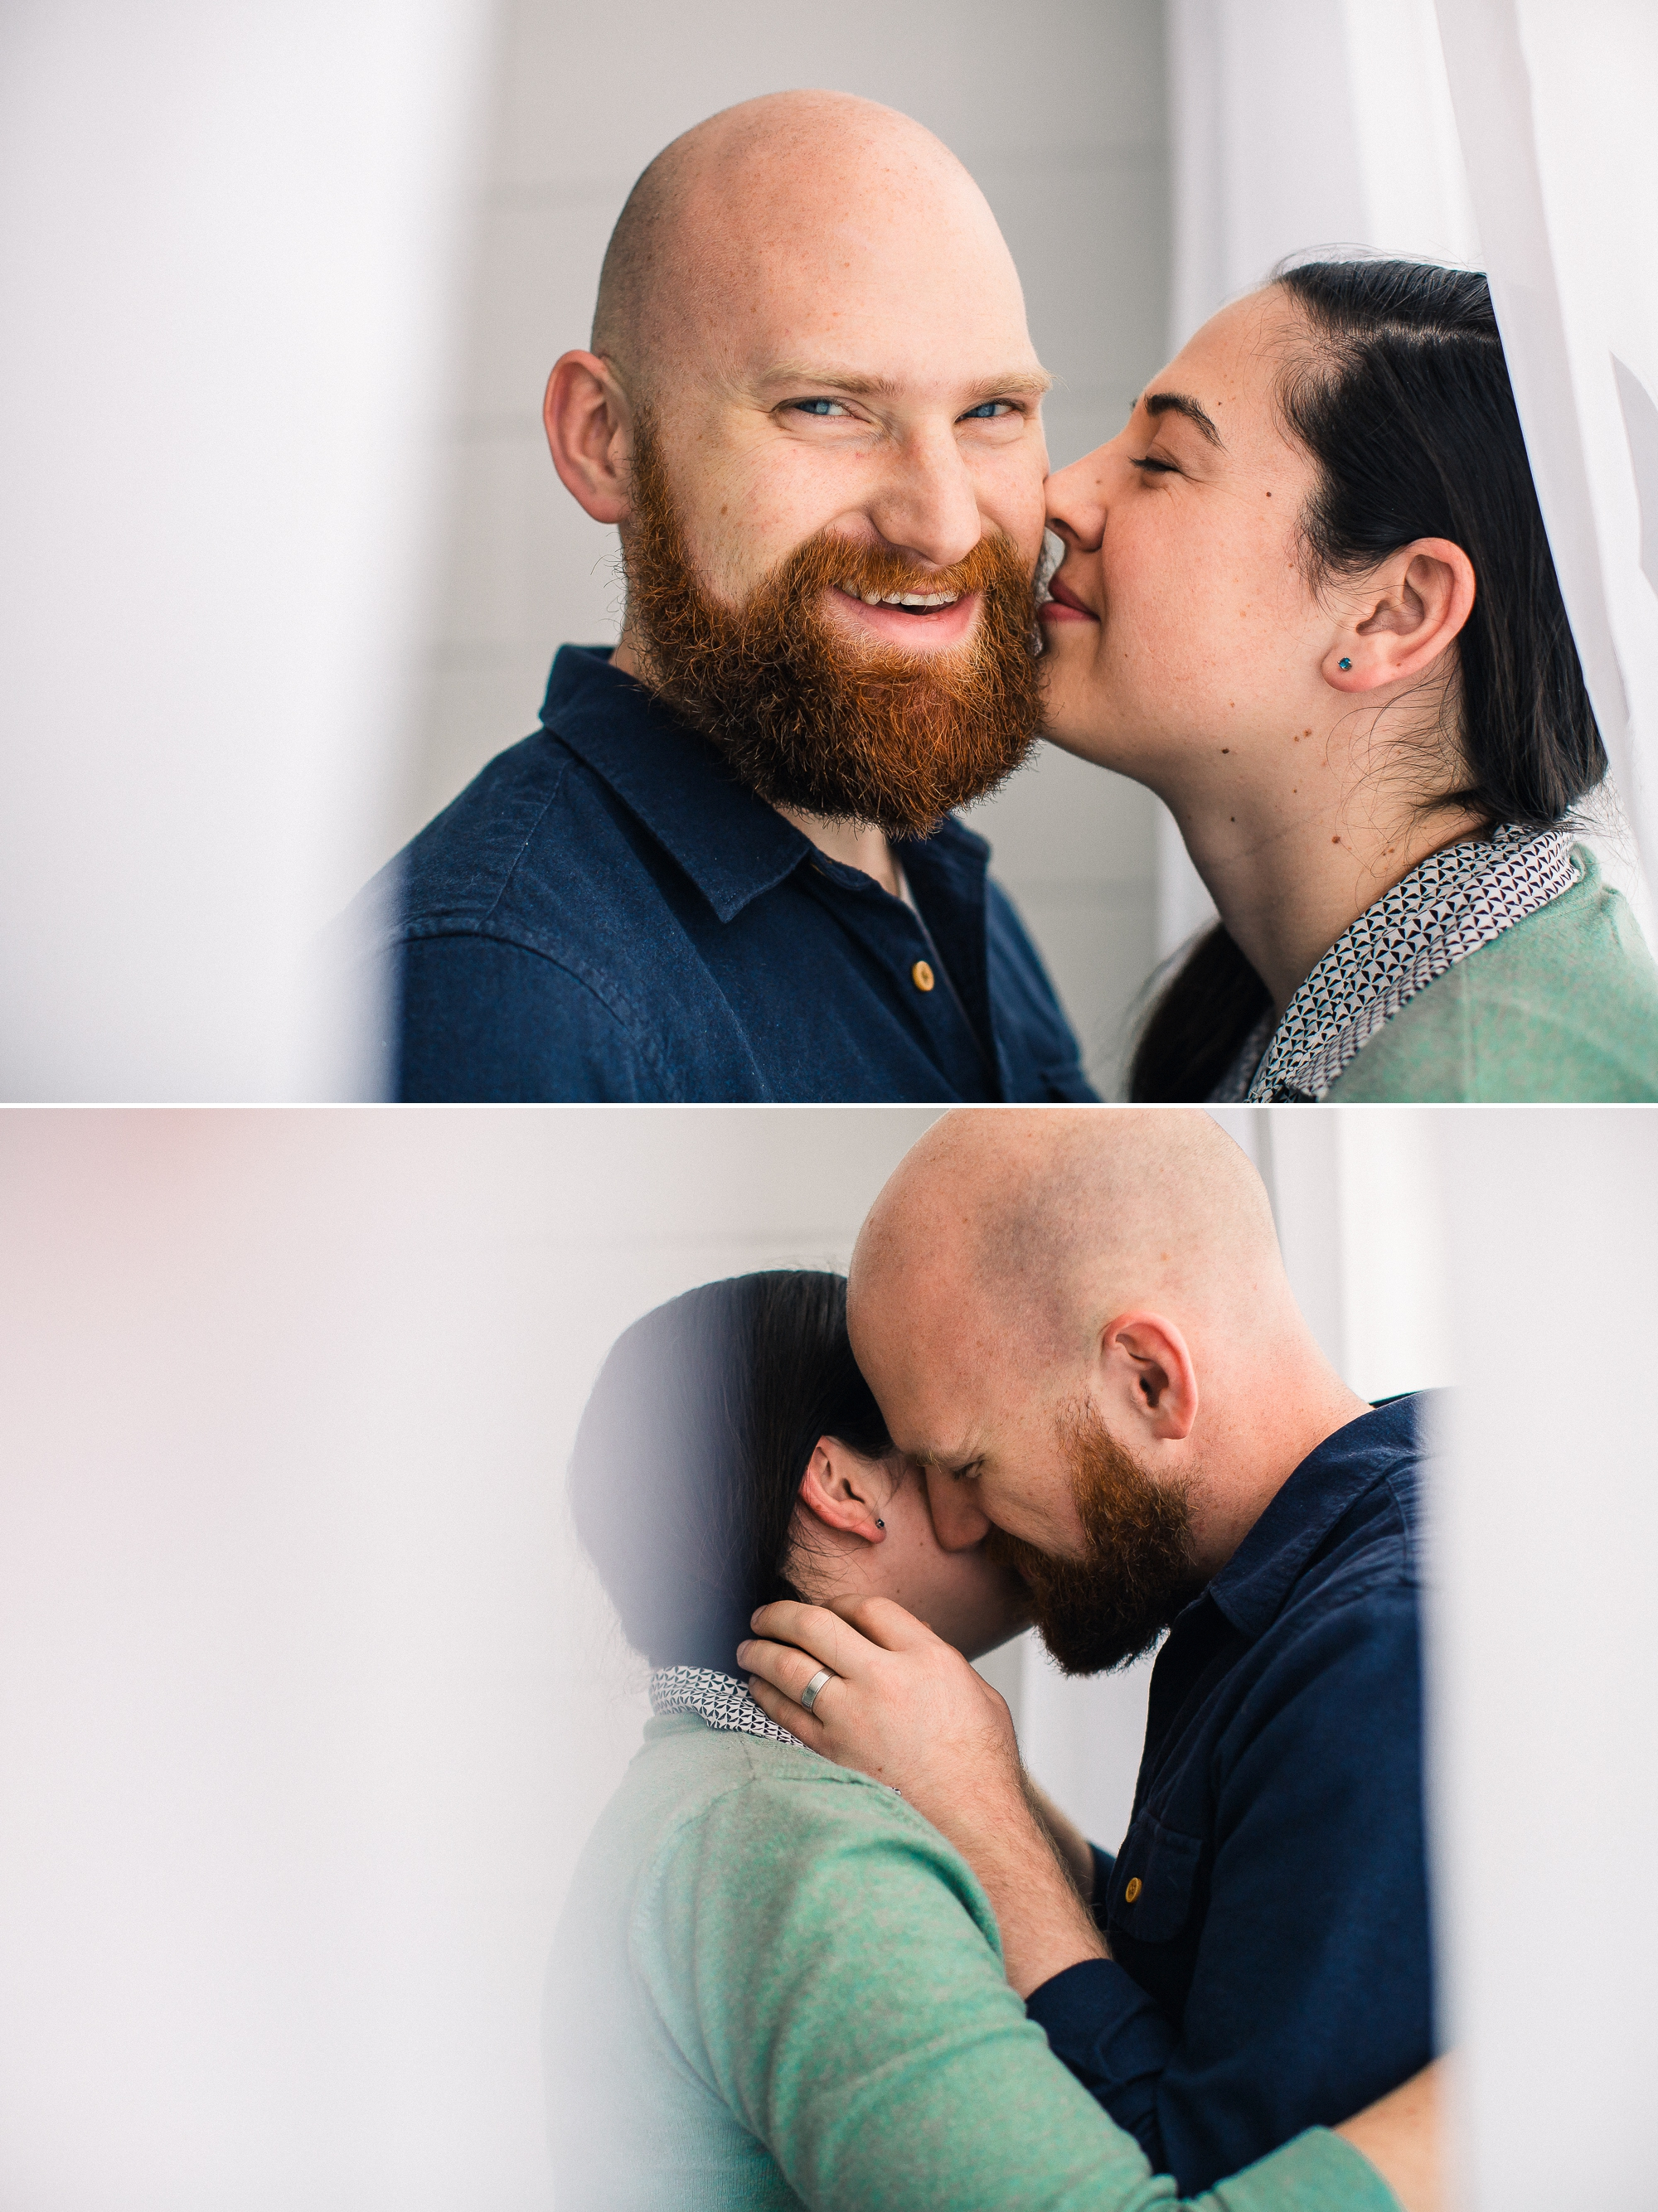 bay-area-couples-session 4.jpg